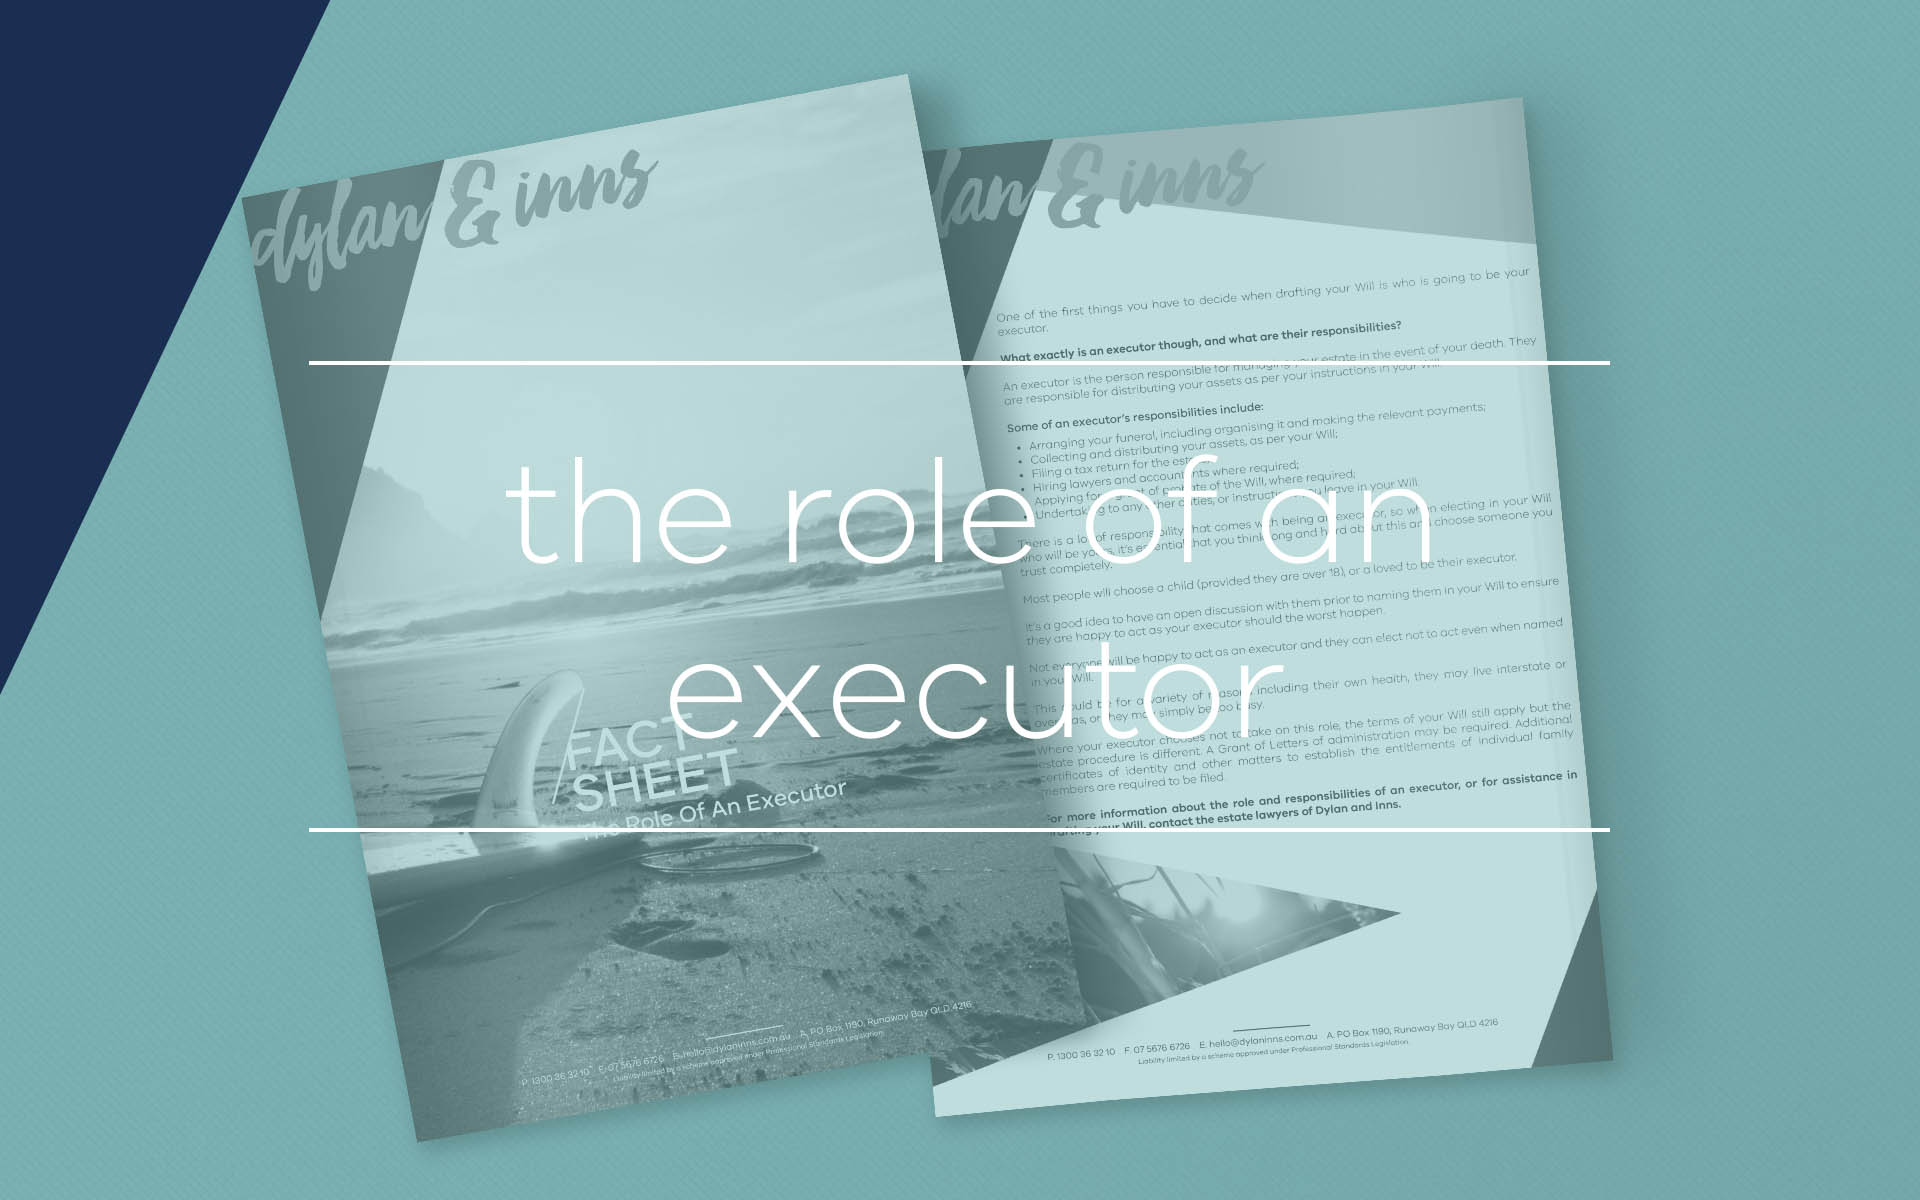 When drafting a Will you must elect a person to act as your executor in the event of your death. This fact sheet contains more information on the role of an executor and their responsibilities.